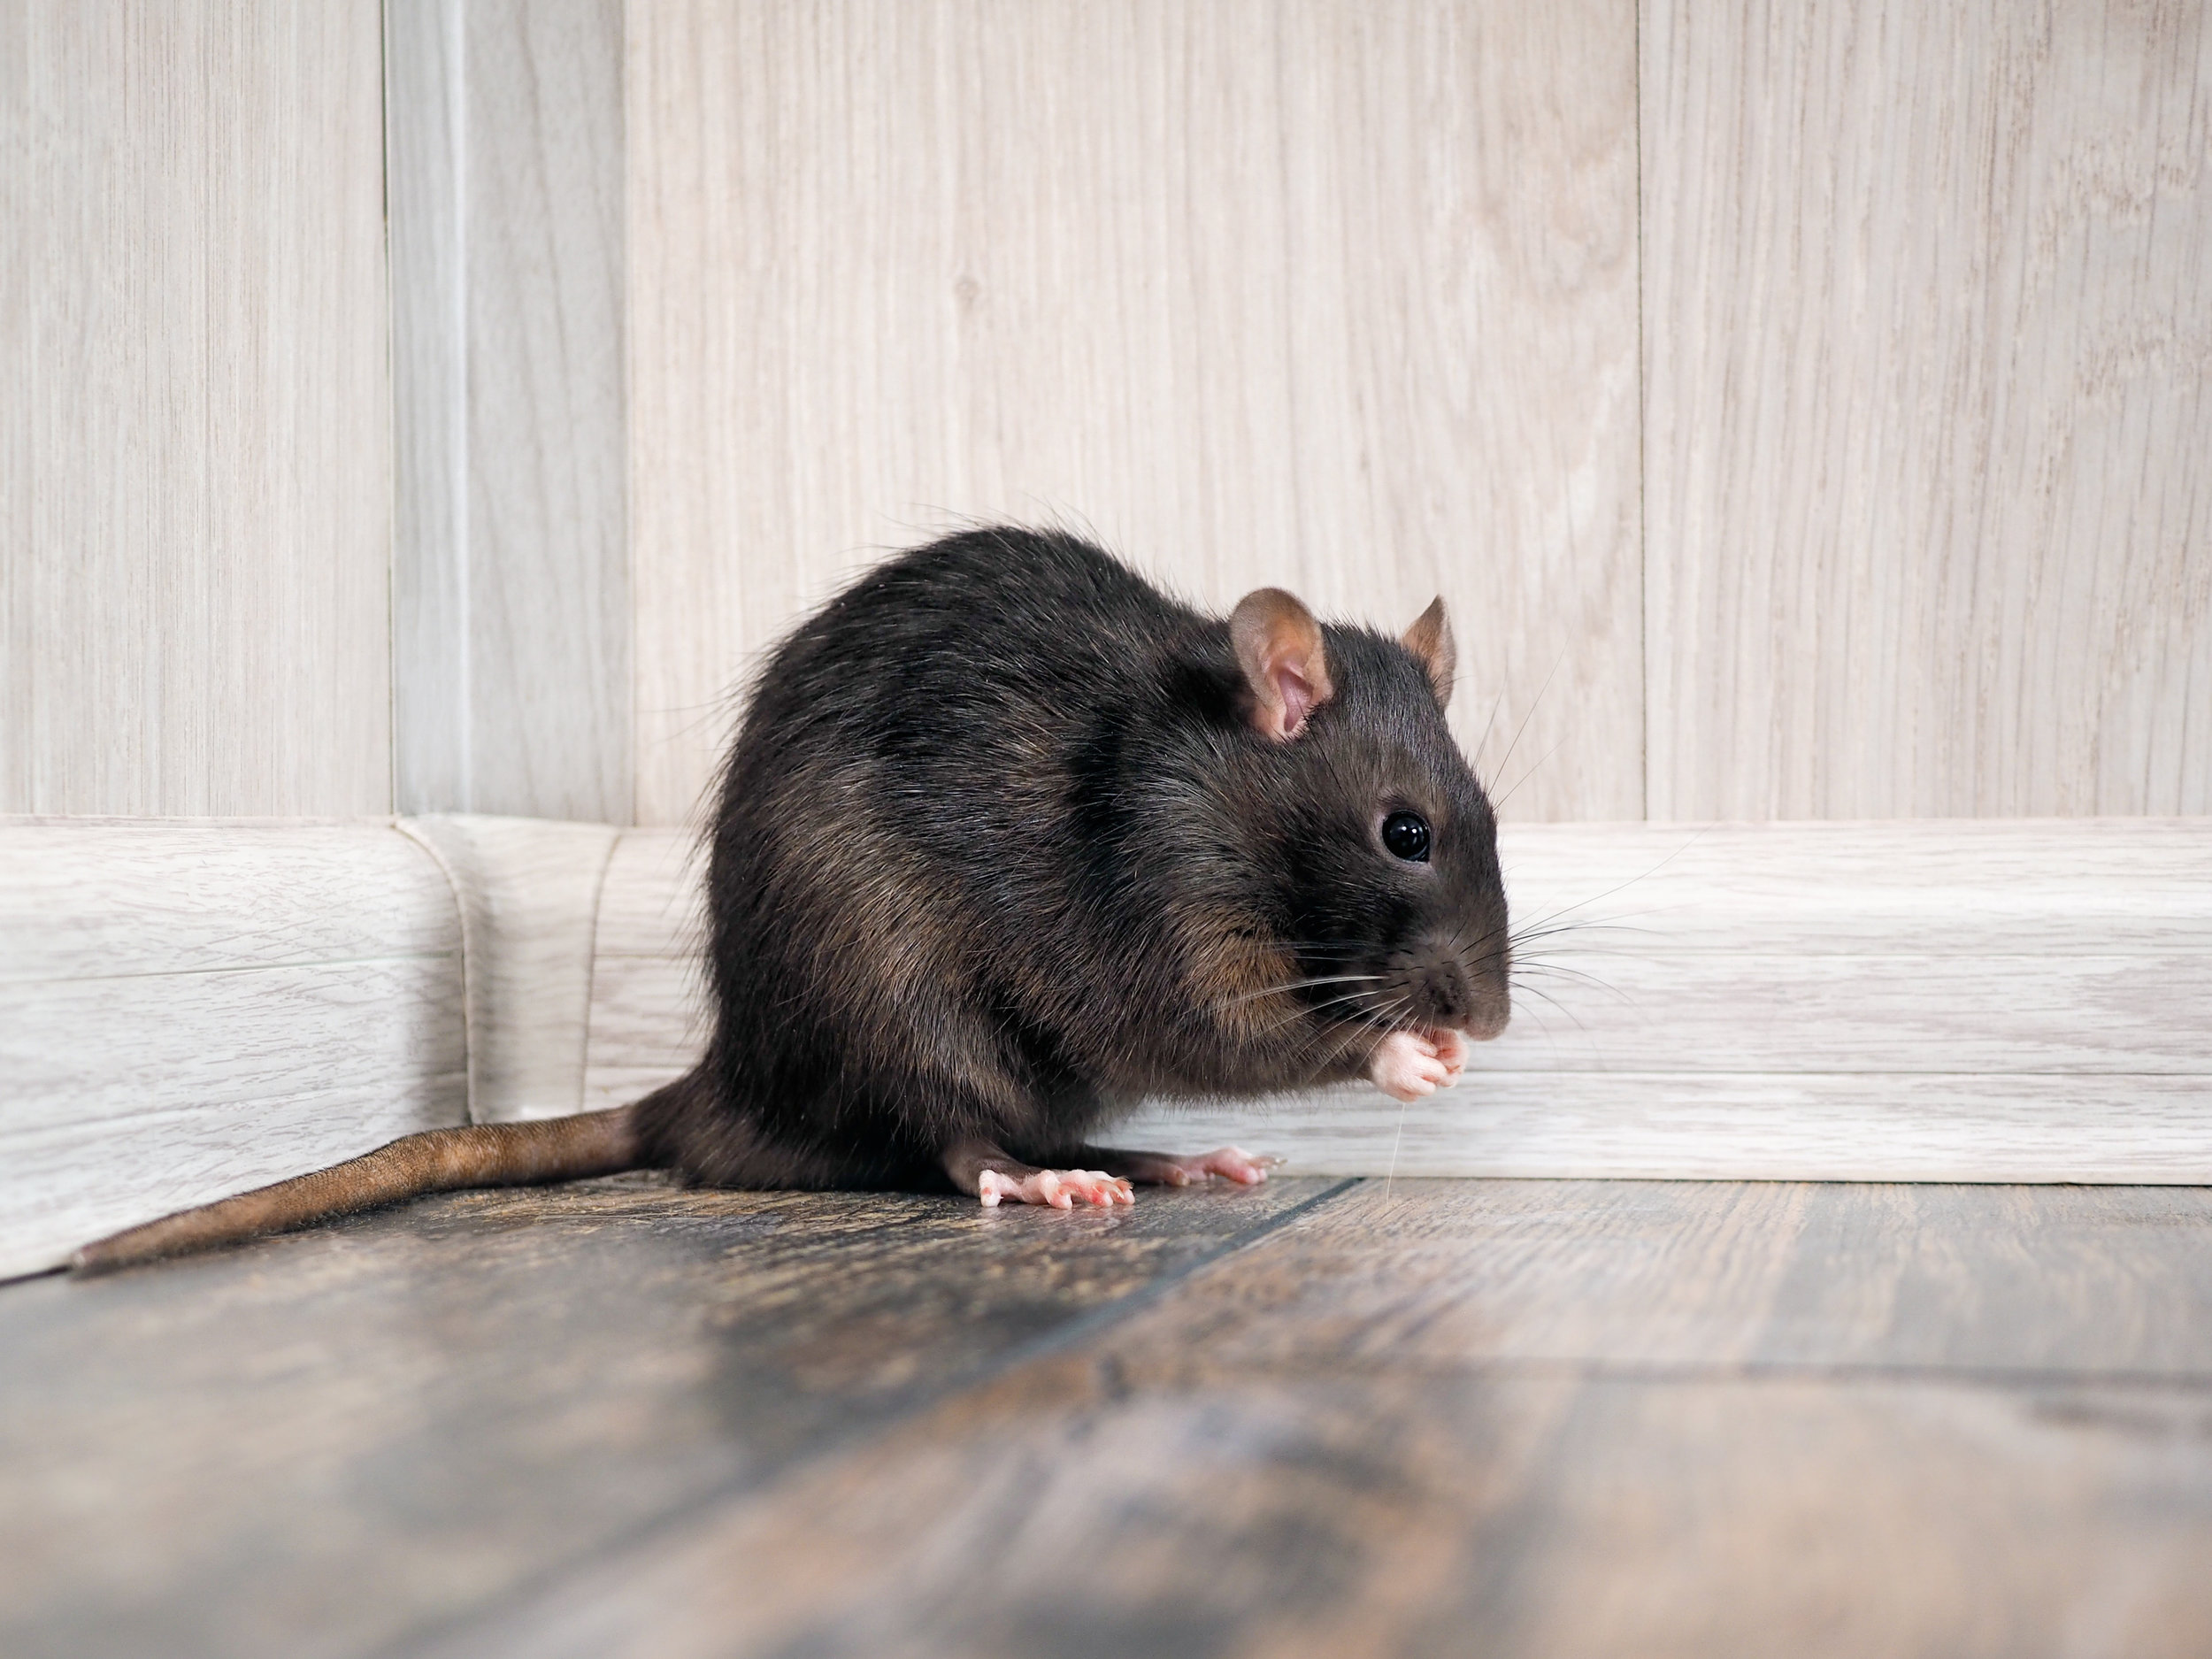 4 Reasons Why Procrastinating a Call to the Exterminator Will Only Spread Rodent Infestation in Brooklyn, NY